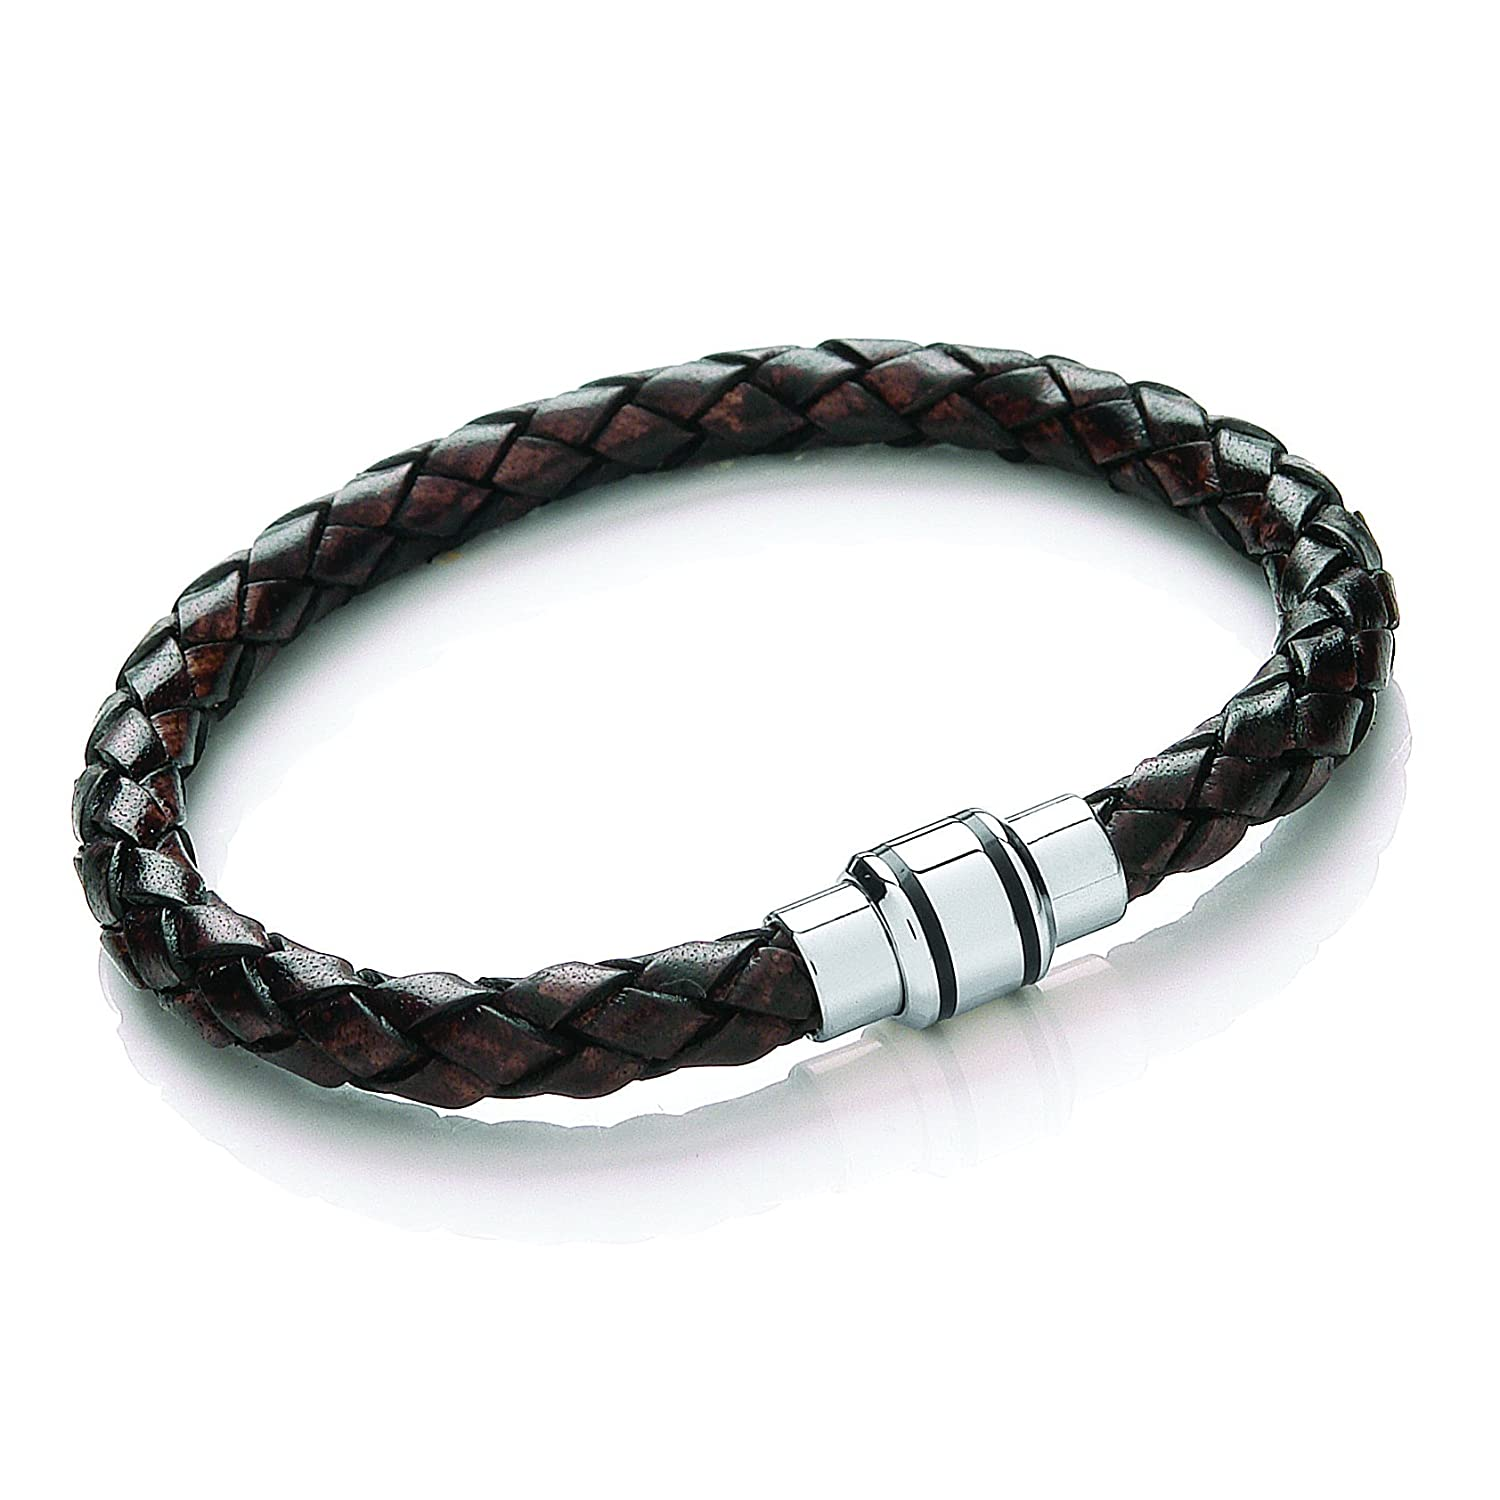 Tribal Steel Plaited Leather Bracelet with Strong Magnetic Clasp and Ion Plating Detail